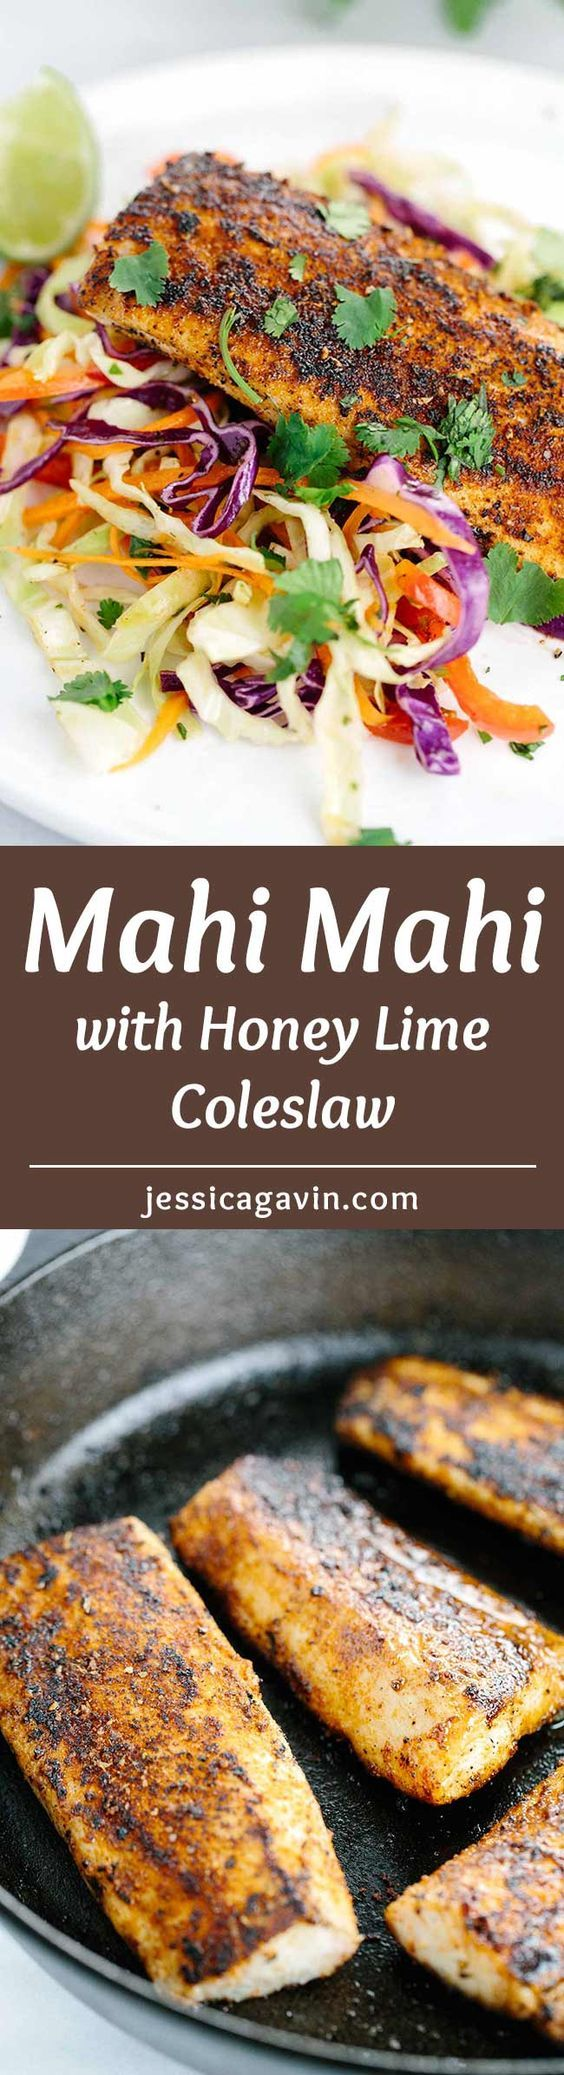 Pan Seared Mahi Mahi with Honey Lime Coleslaw - The fish in this recipe are coated with a blend of savory and sweet spices and each fillet is served with a crunchy and refreshing honey lime coleslaw. | jessicagavin.com